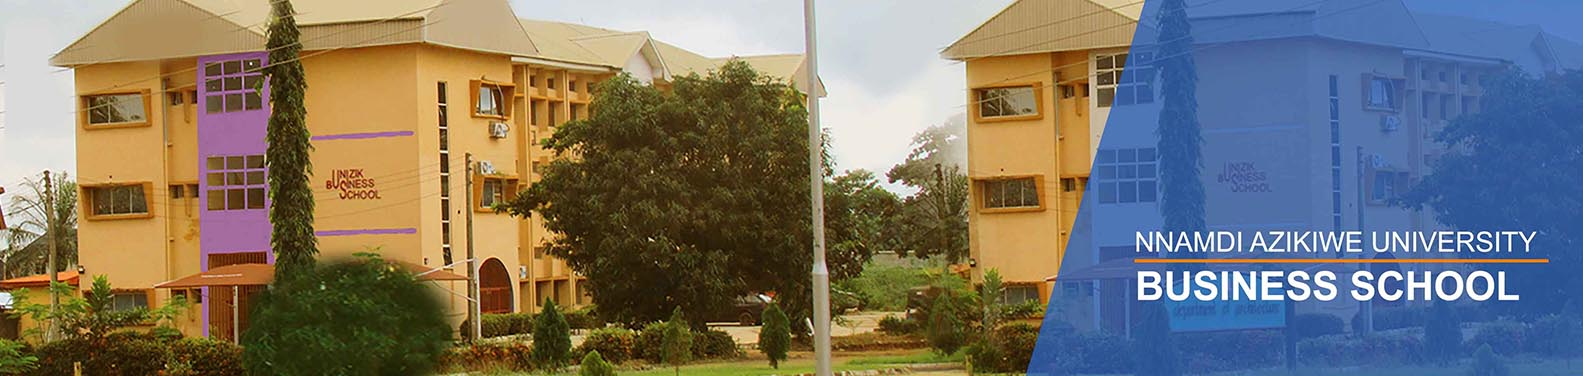 UNIZIK Business School